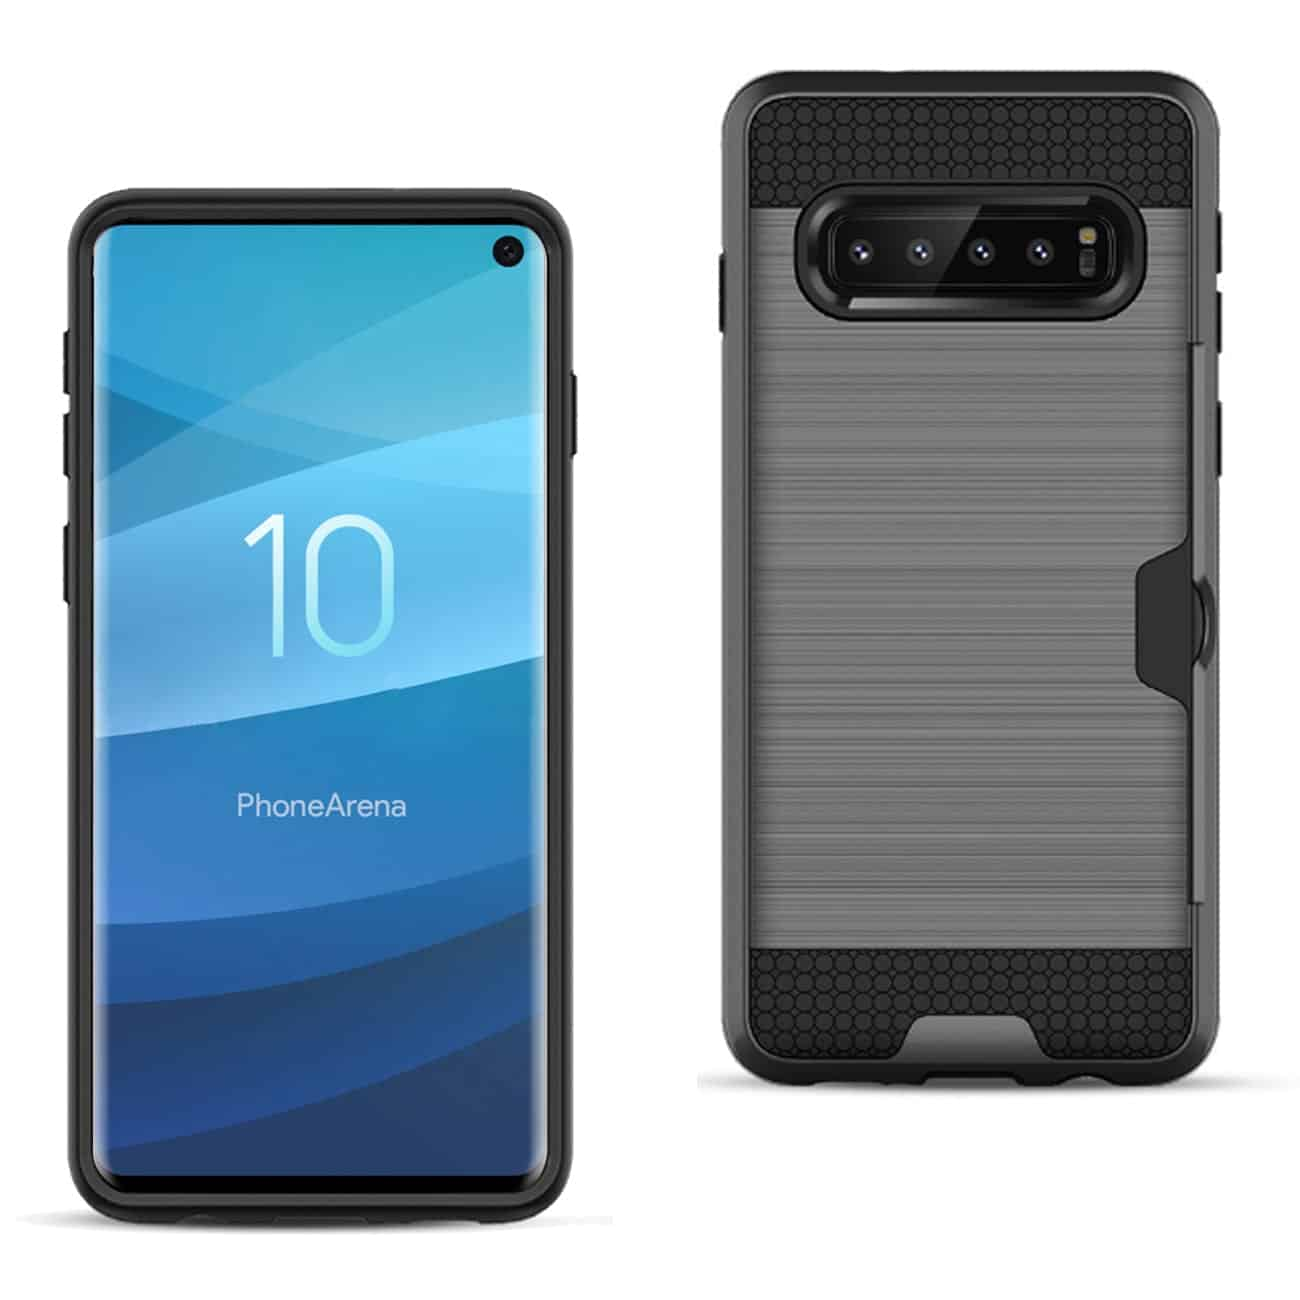 SAMSUNG GALAXY S10 Slim Armor Hybrid Case With Card Holder In Gray